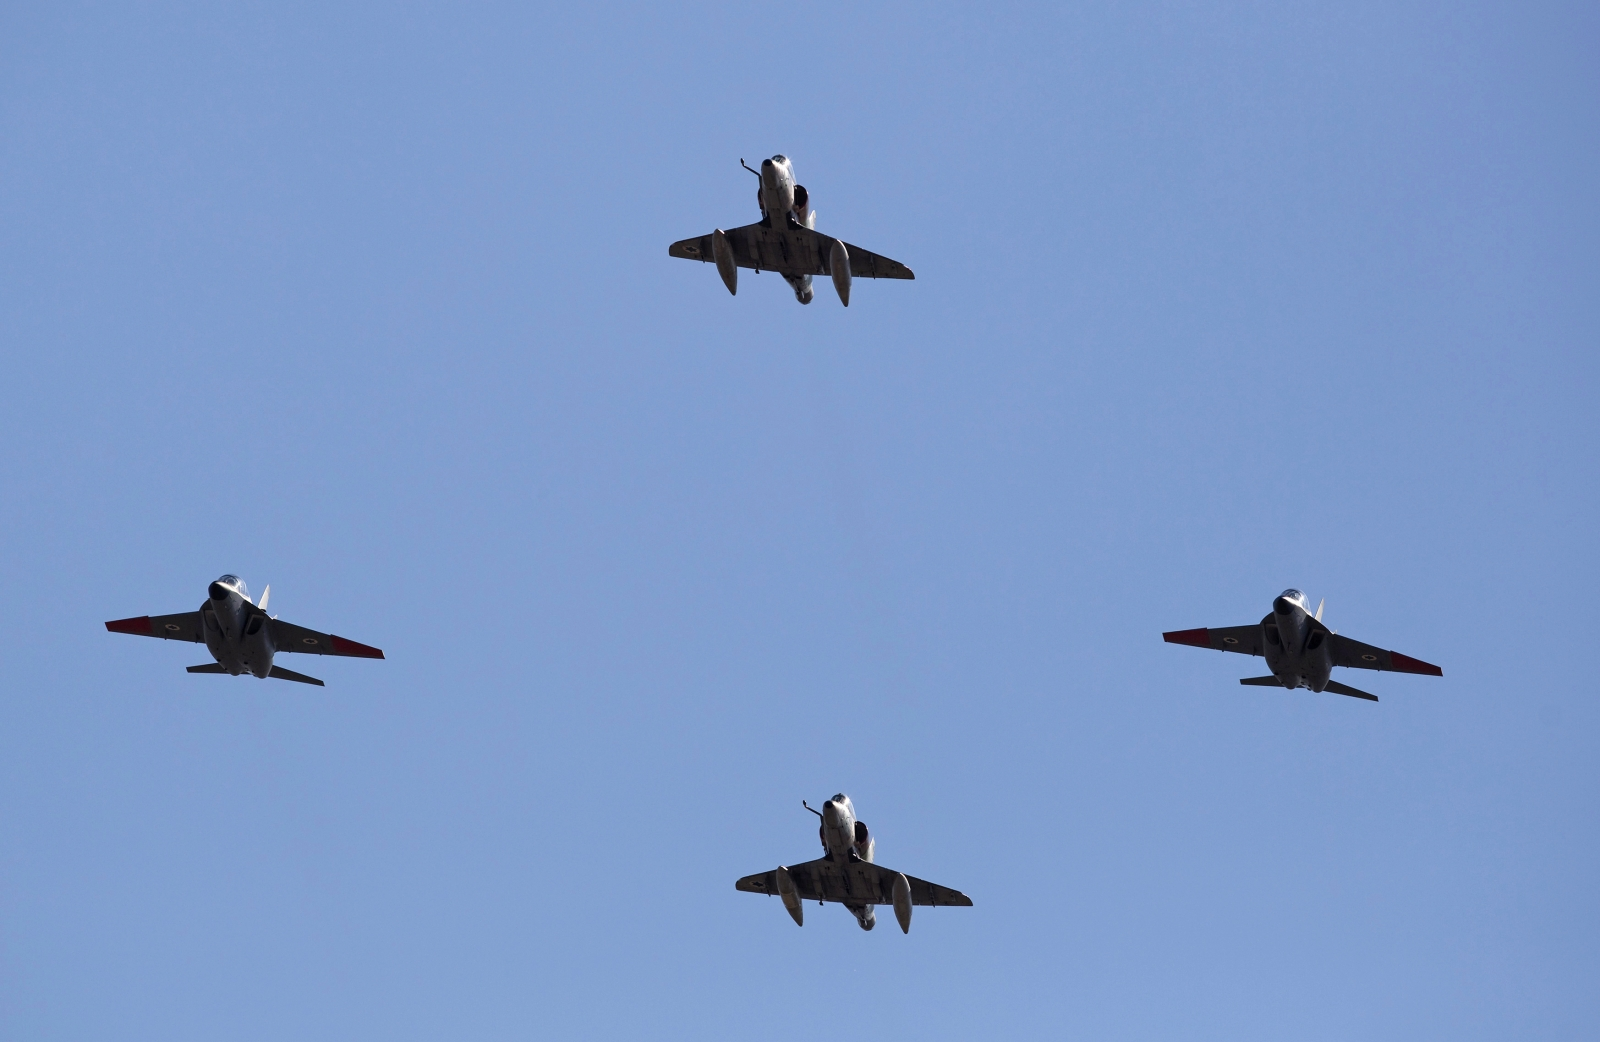 Syria calls for UN sanctions on Israel over Damascus airstrikes